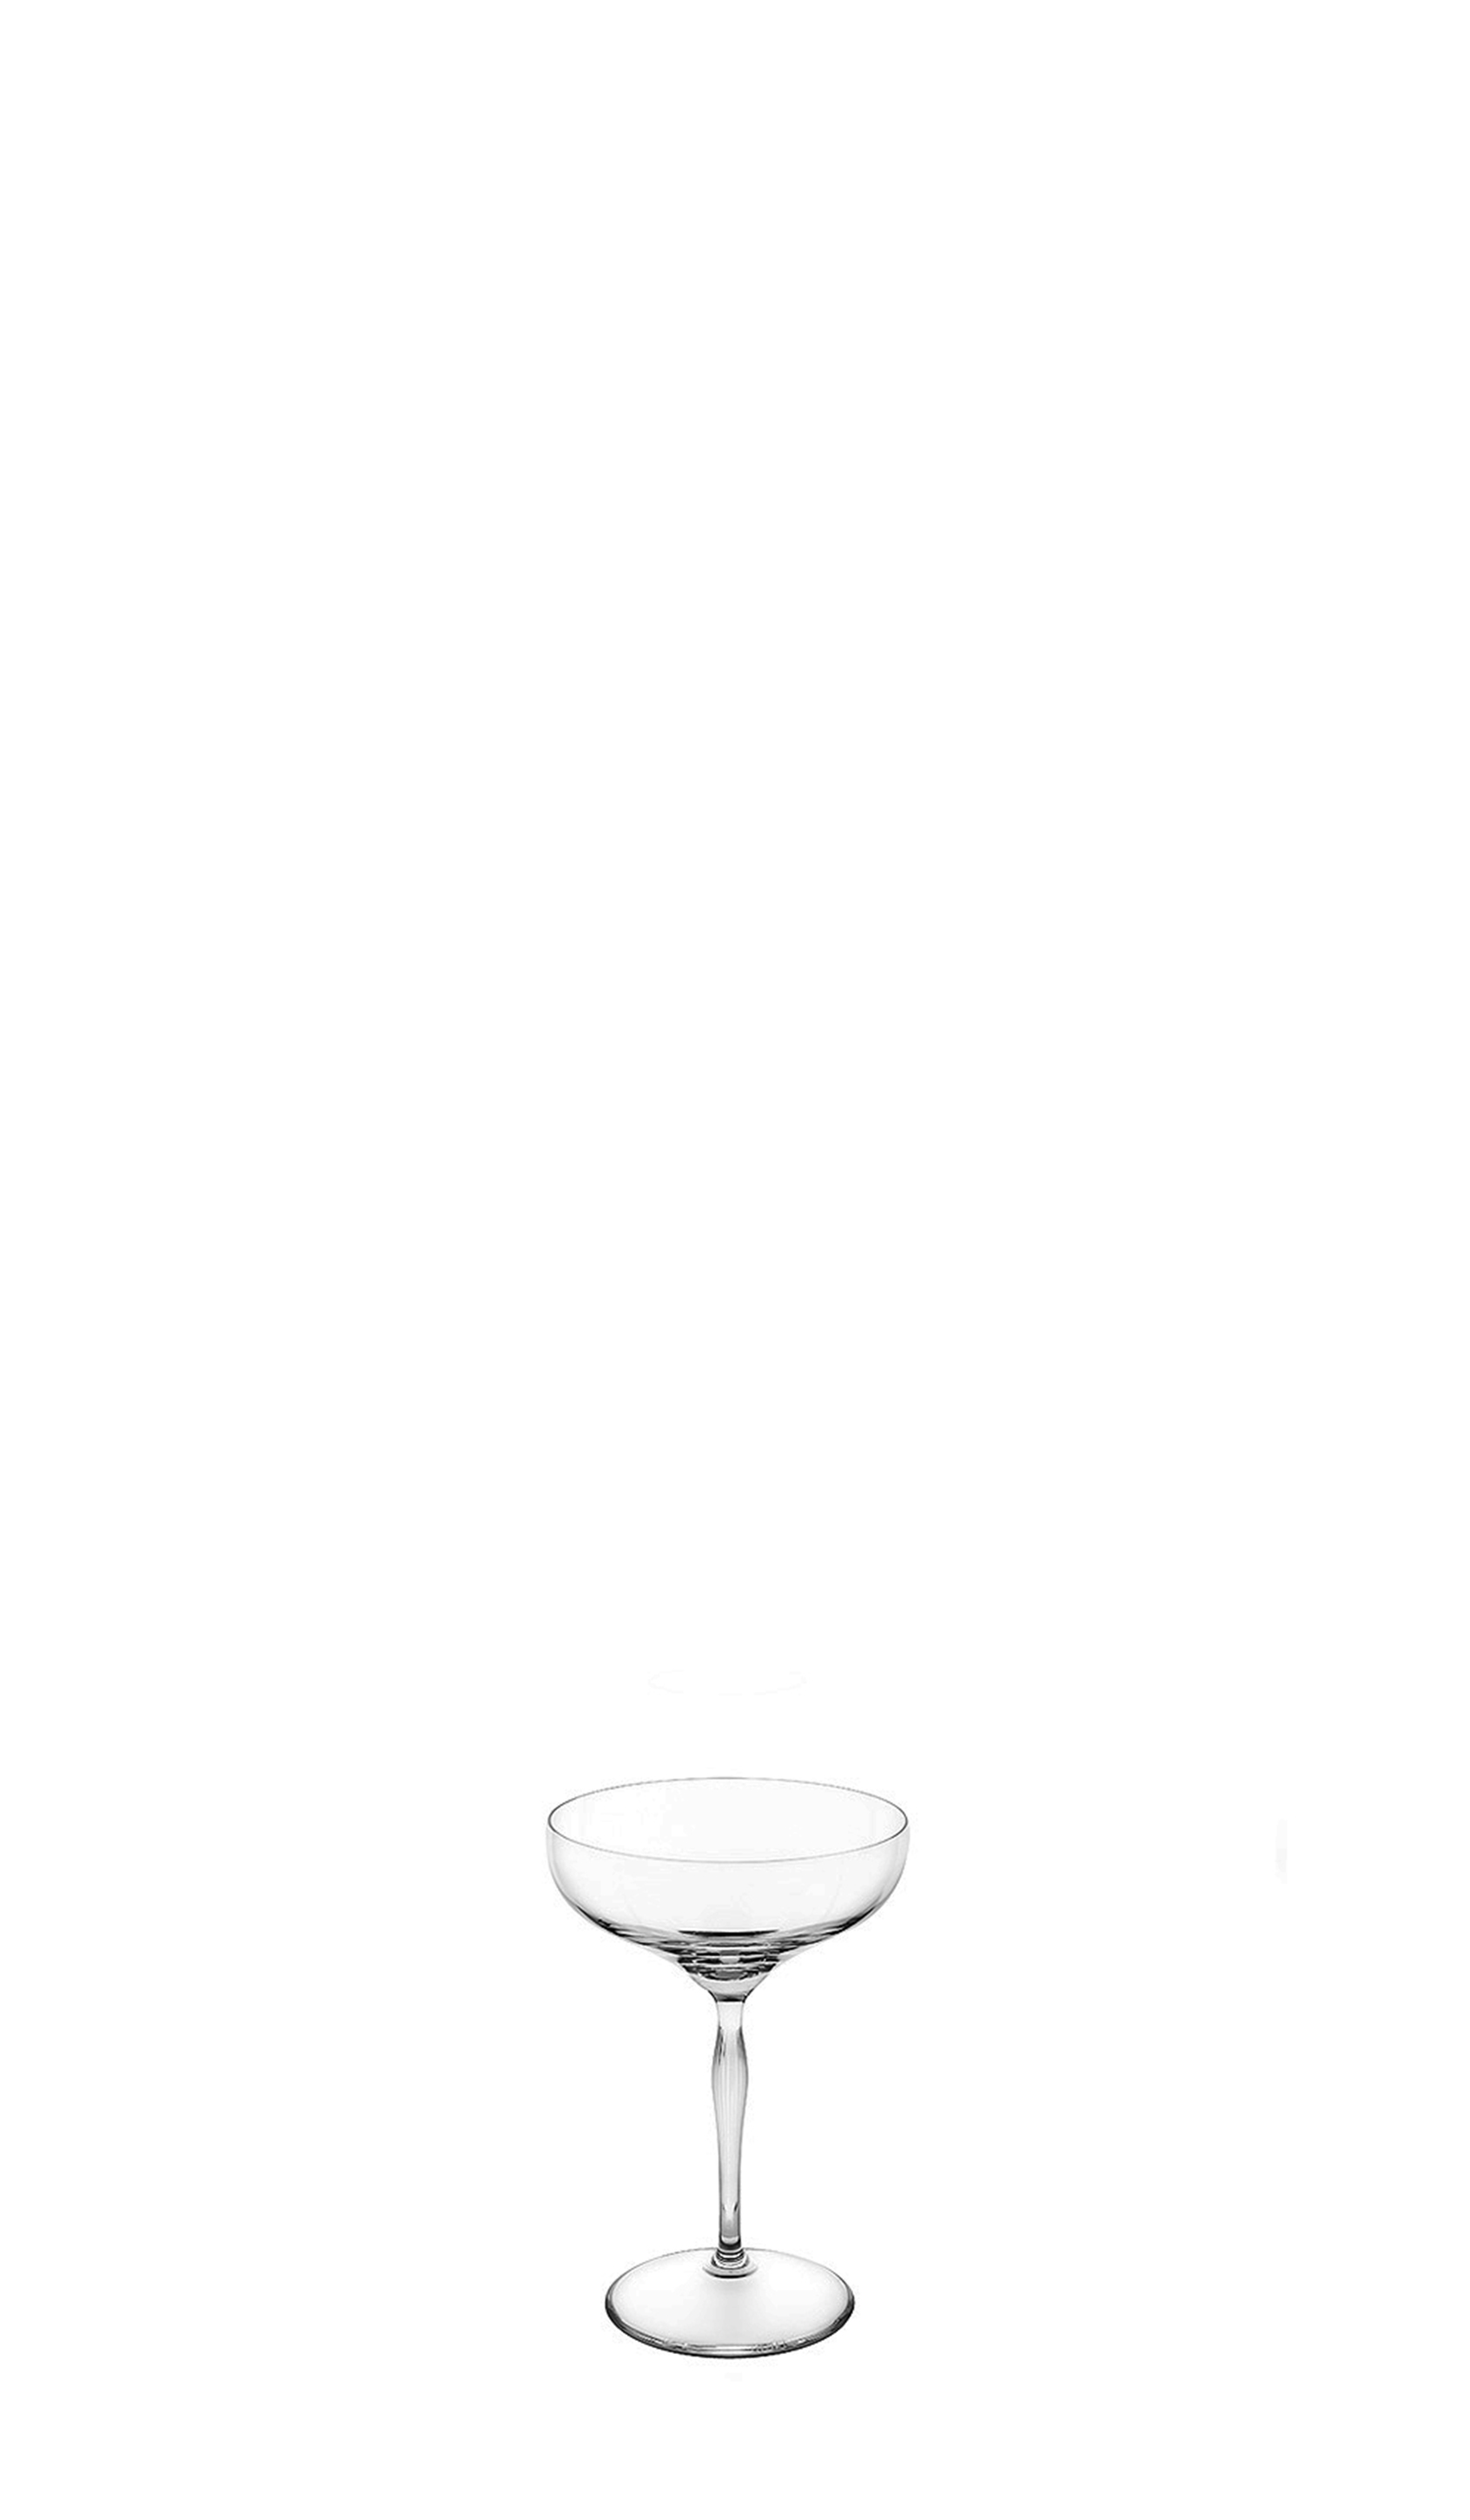 Champagnerschale, 1 Glas, 100 Points